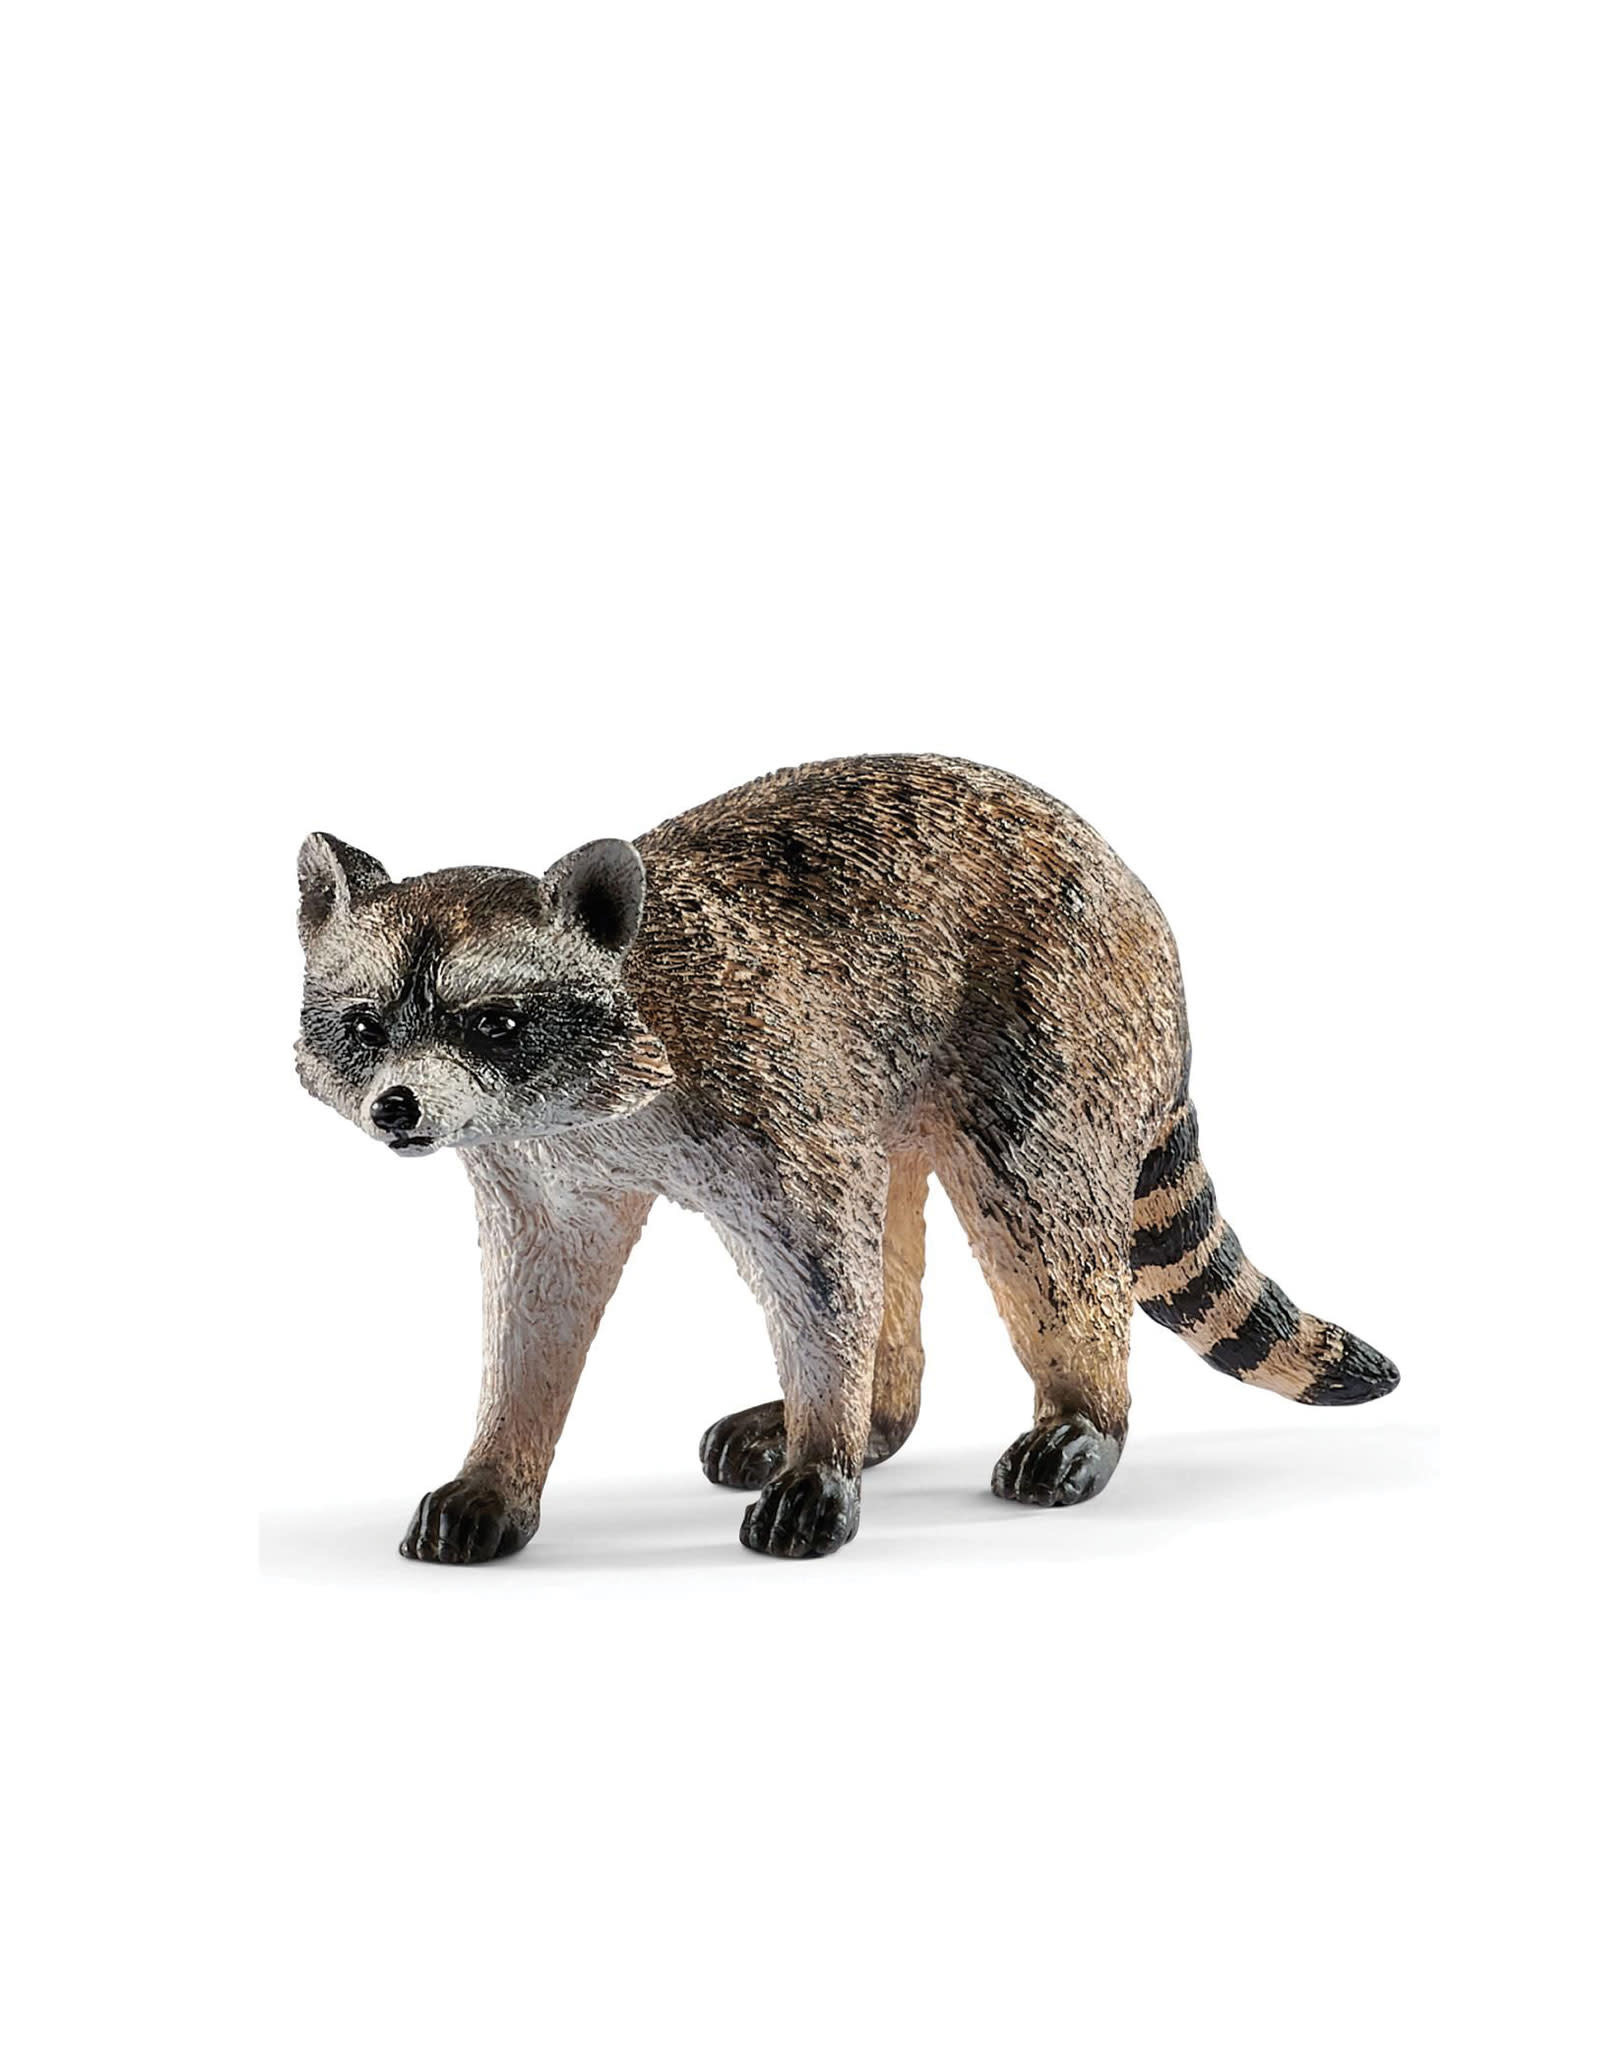 Schleich Animal - Racoon